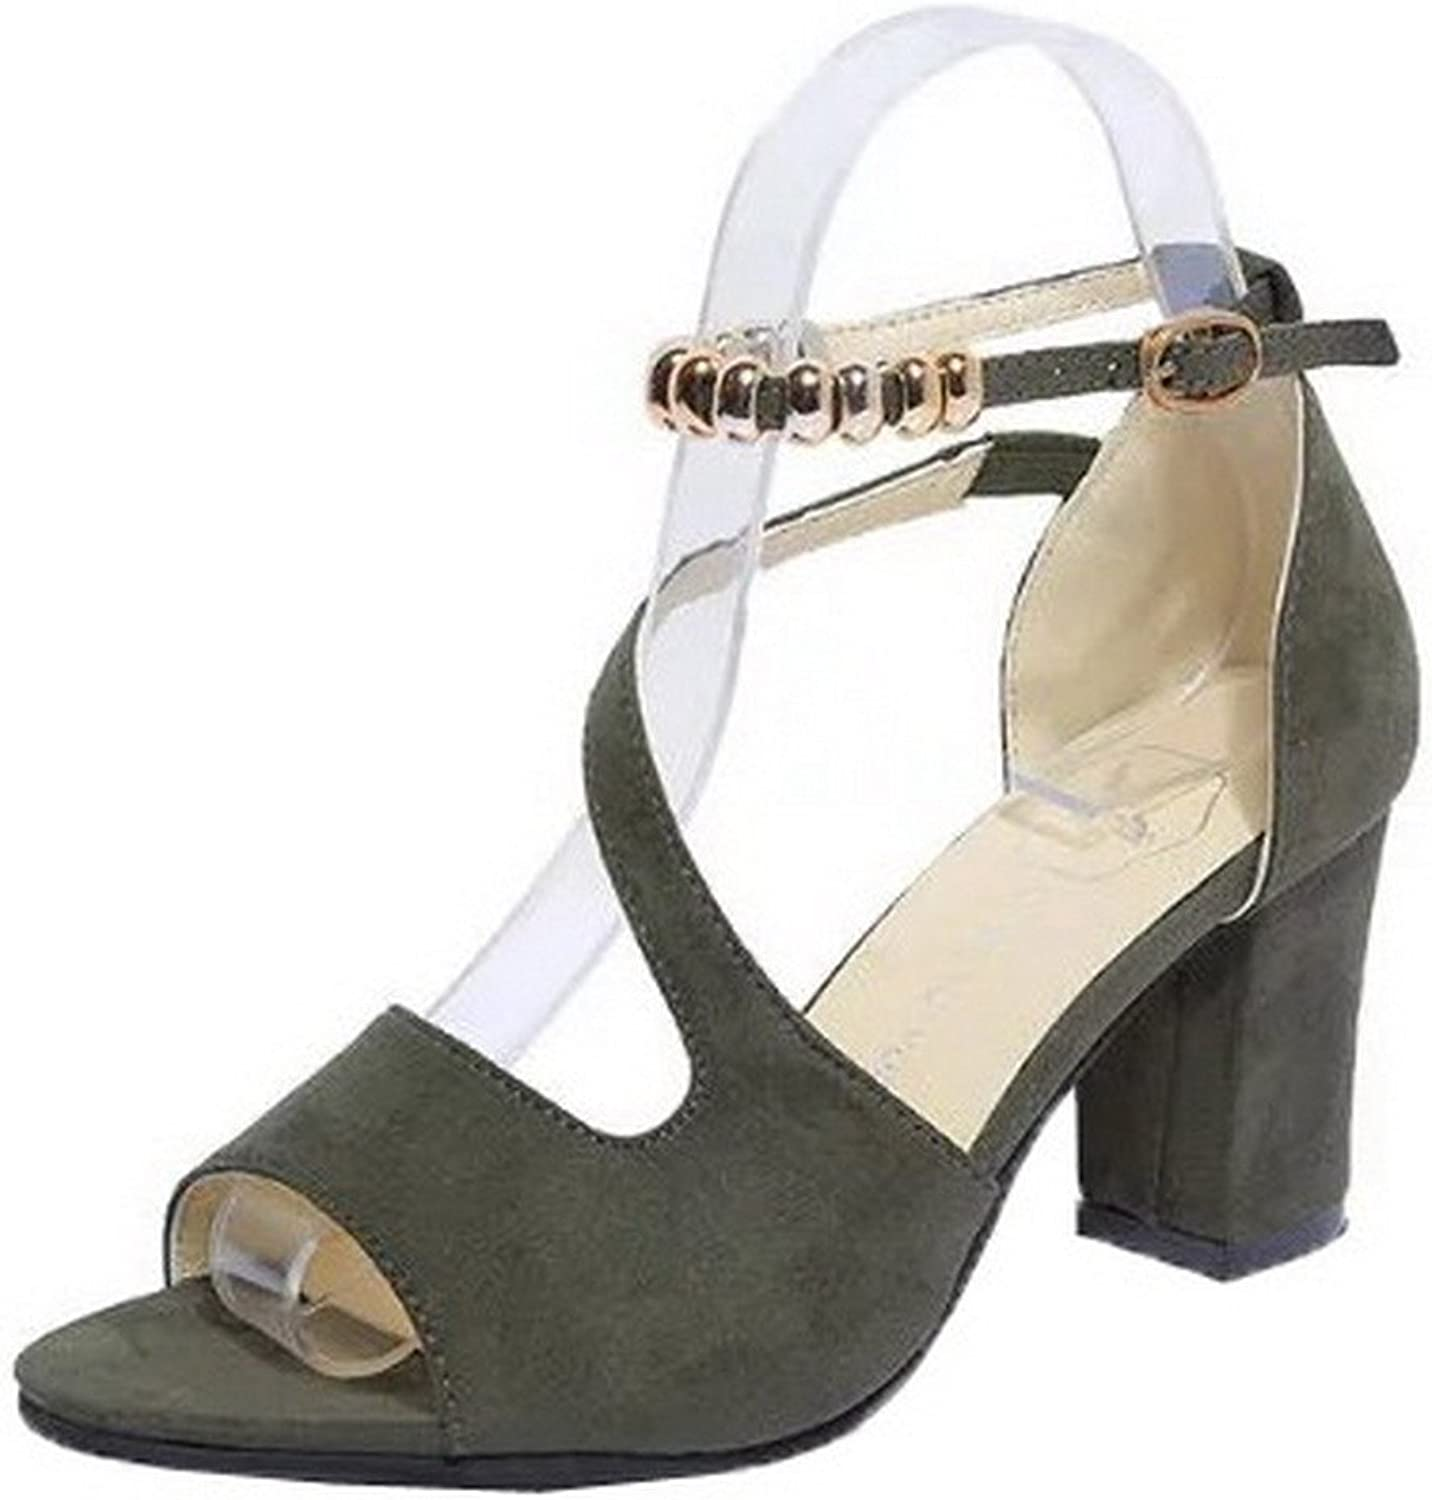 WeenFashion Women's Buckle High-Heels Frosted Solid Open-Toe Sandals